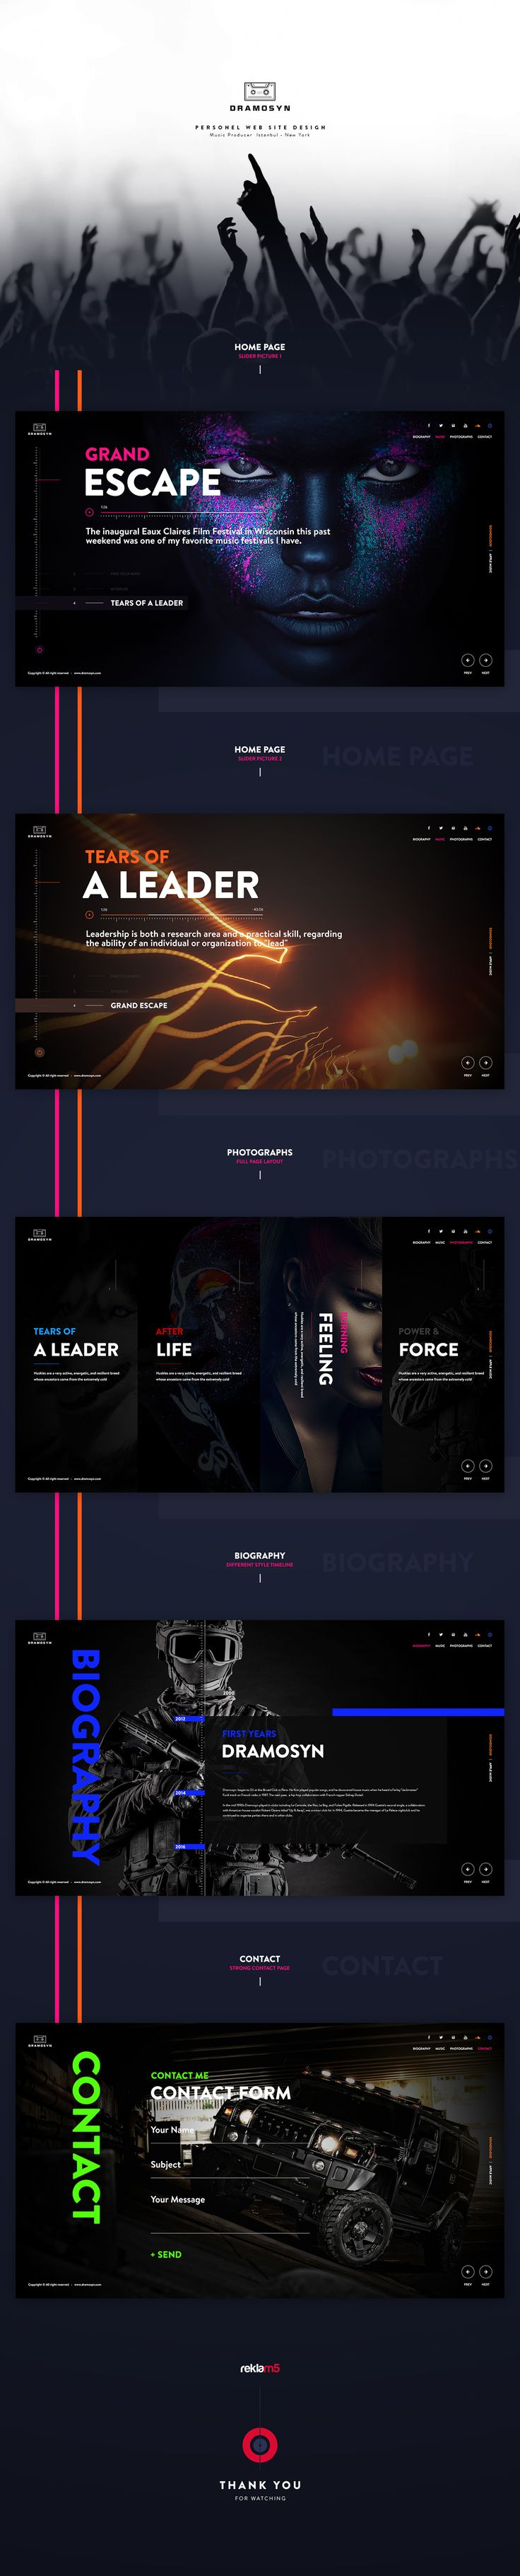 Dramosyn - New Web Site Design on Behance